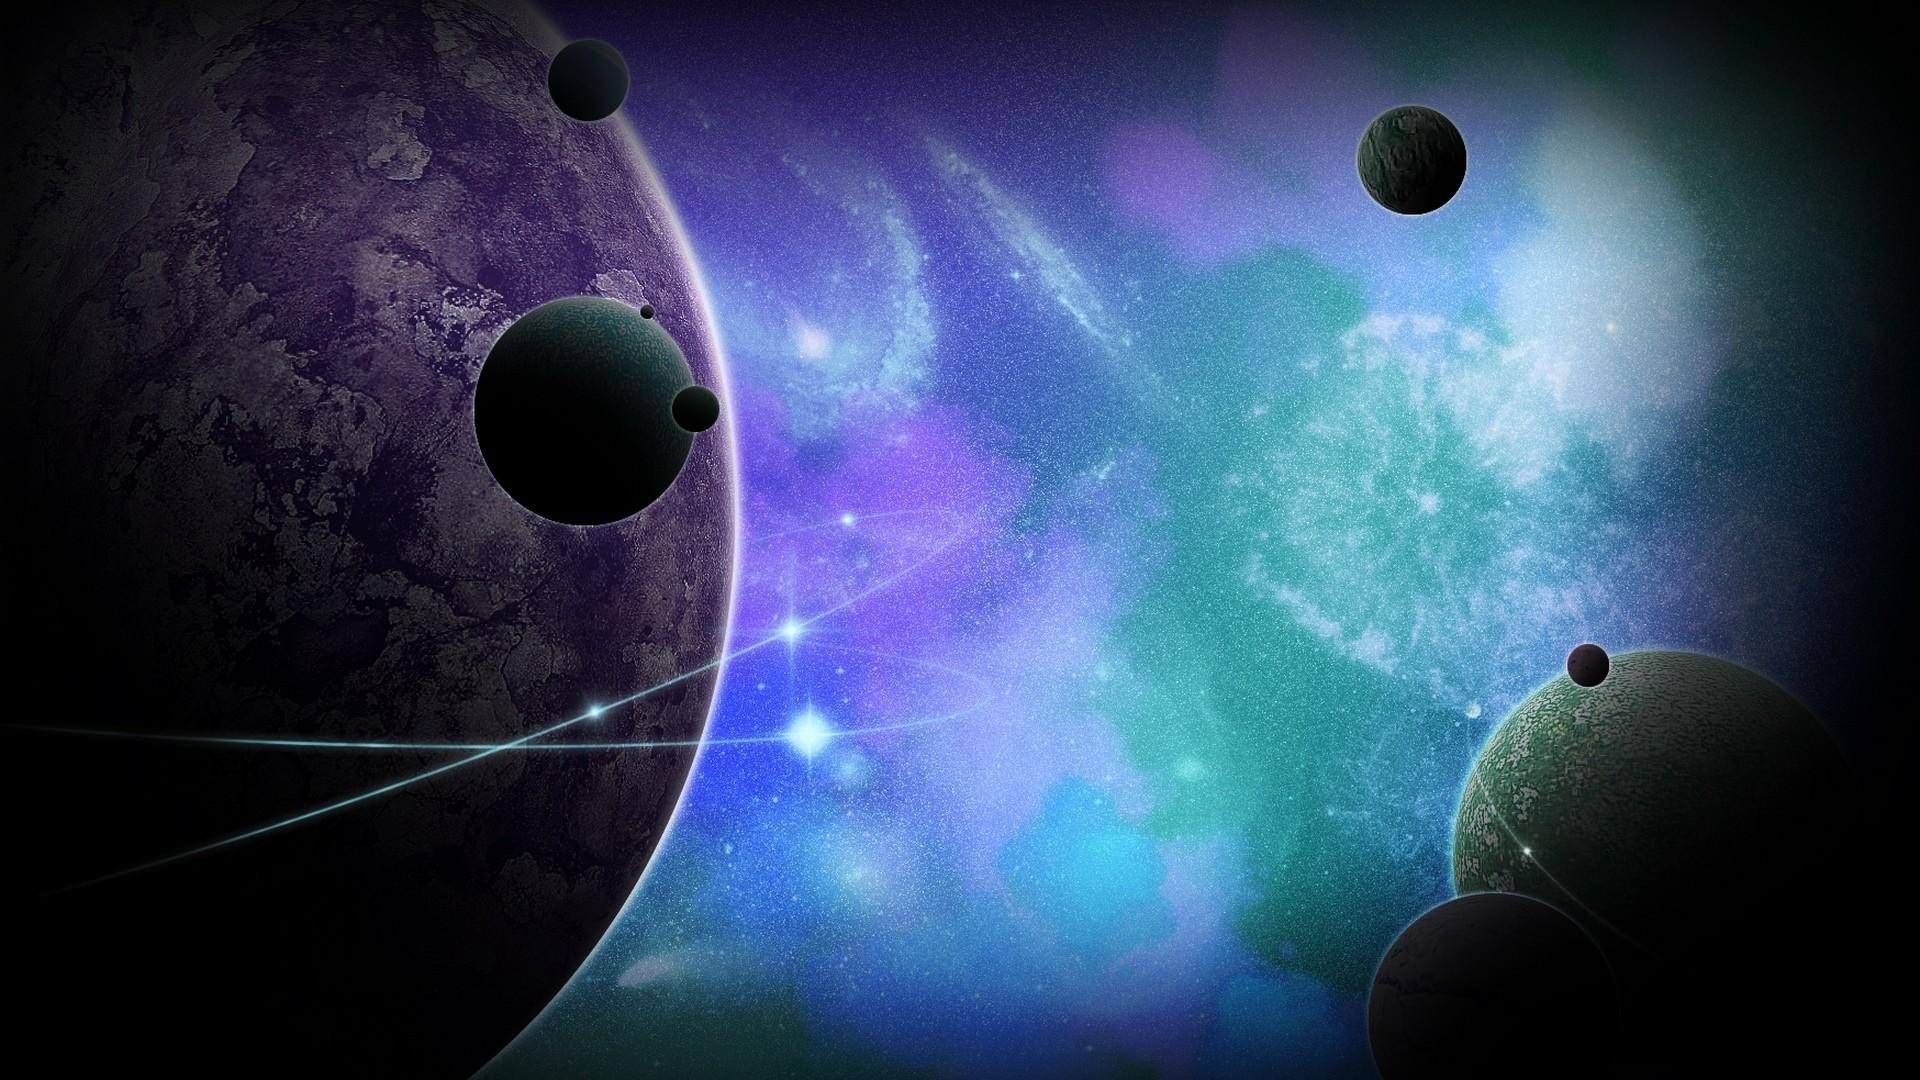 Galaxy 1080p wallpapers 69 images - Galaxy wallpaper 1920x1080 ...